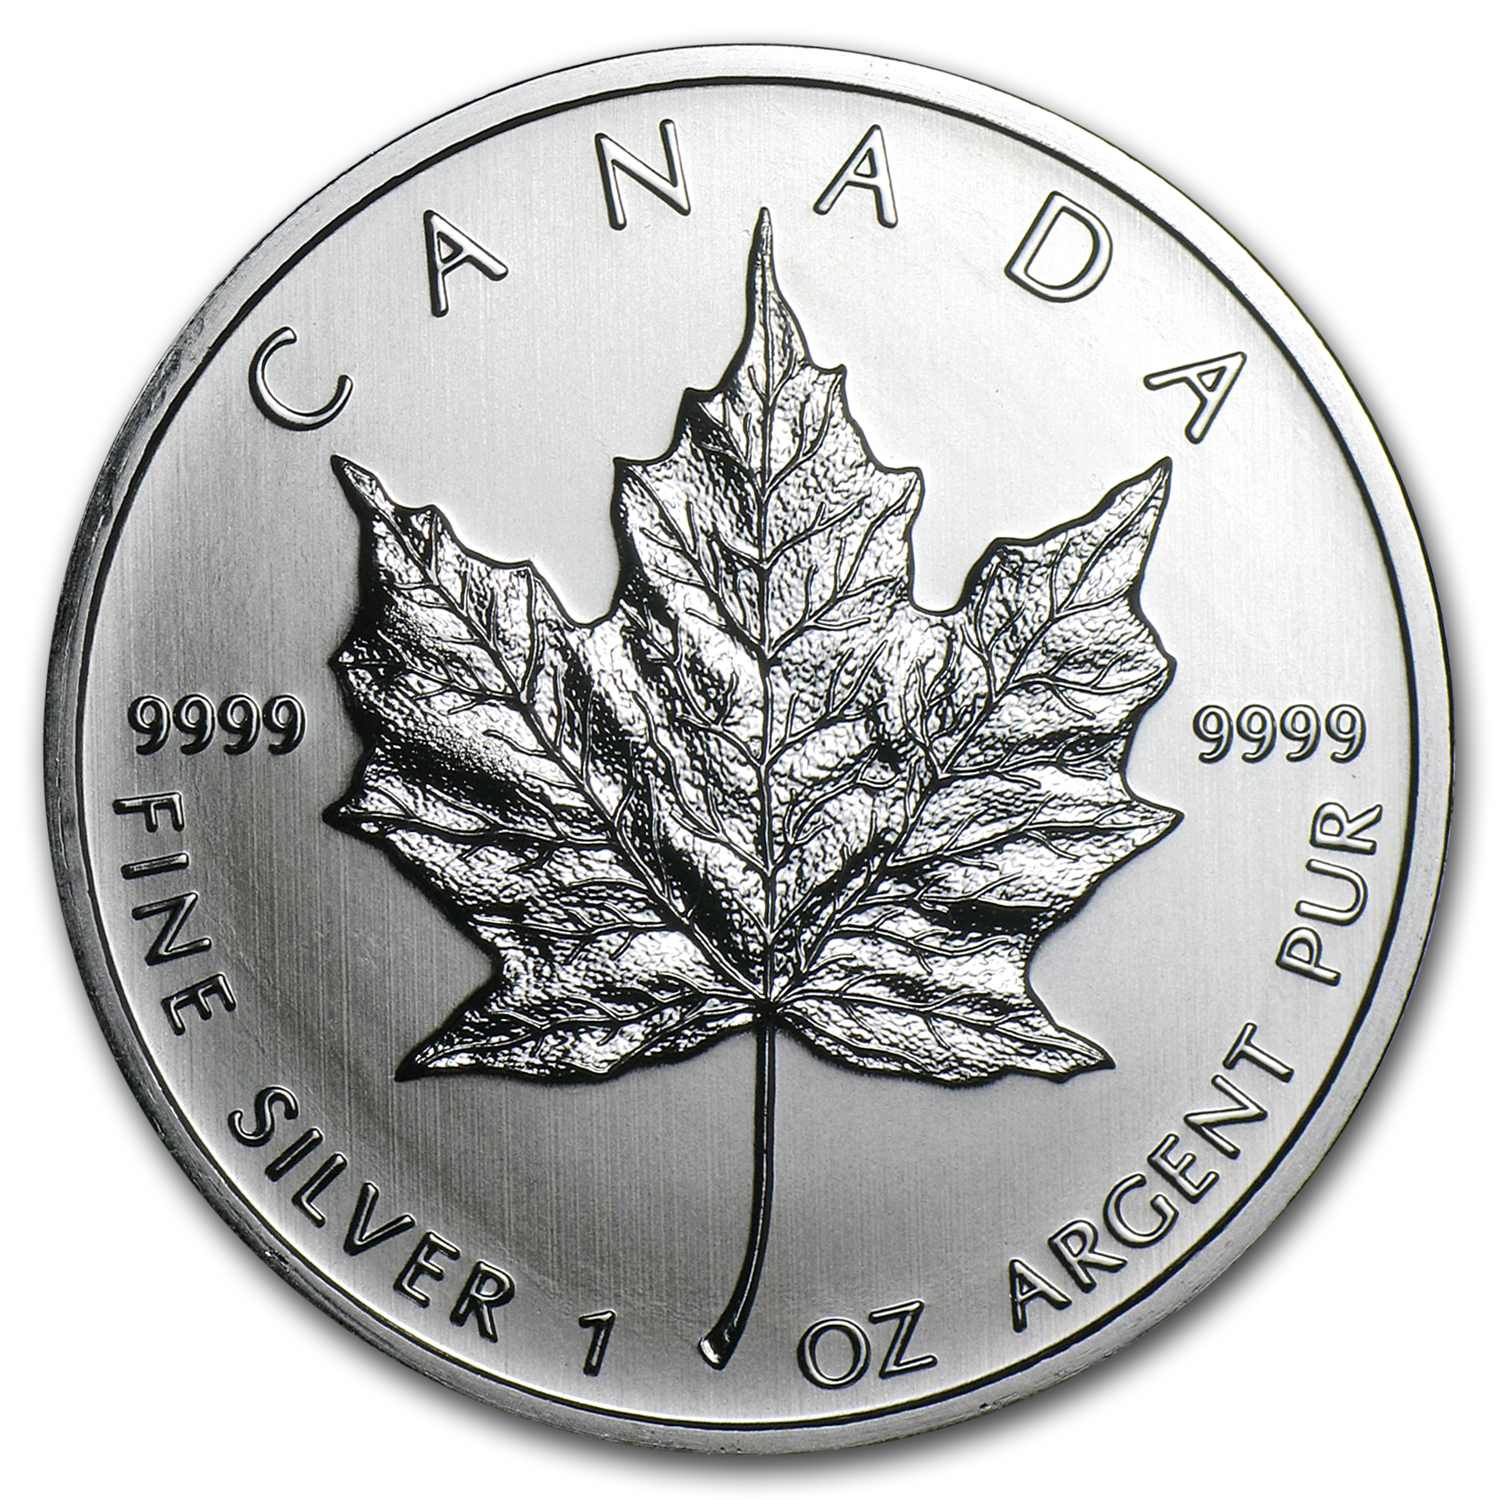 2011 Canada 1 oz Silver Maple Leaf (25-Coin MintDirect® Tube)